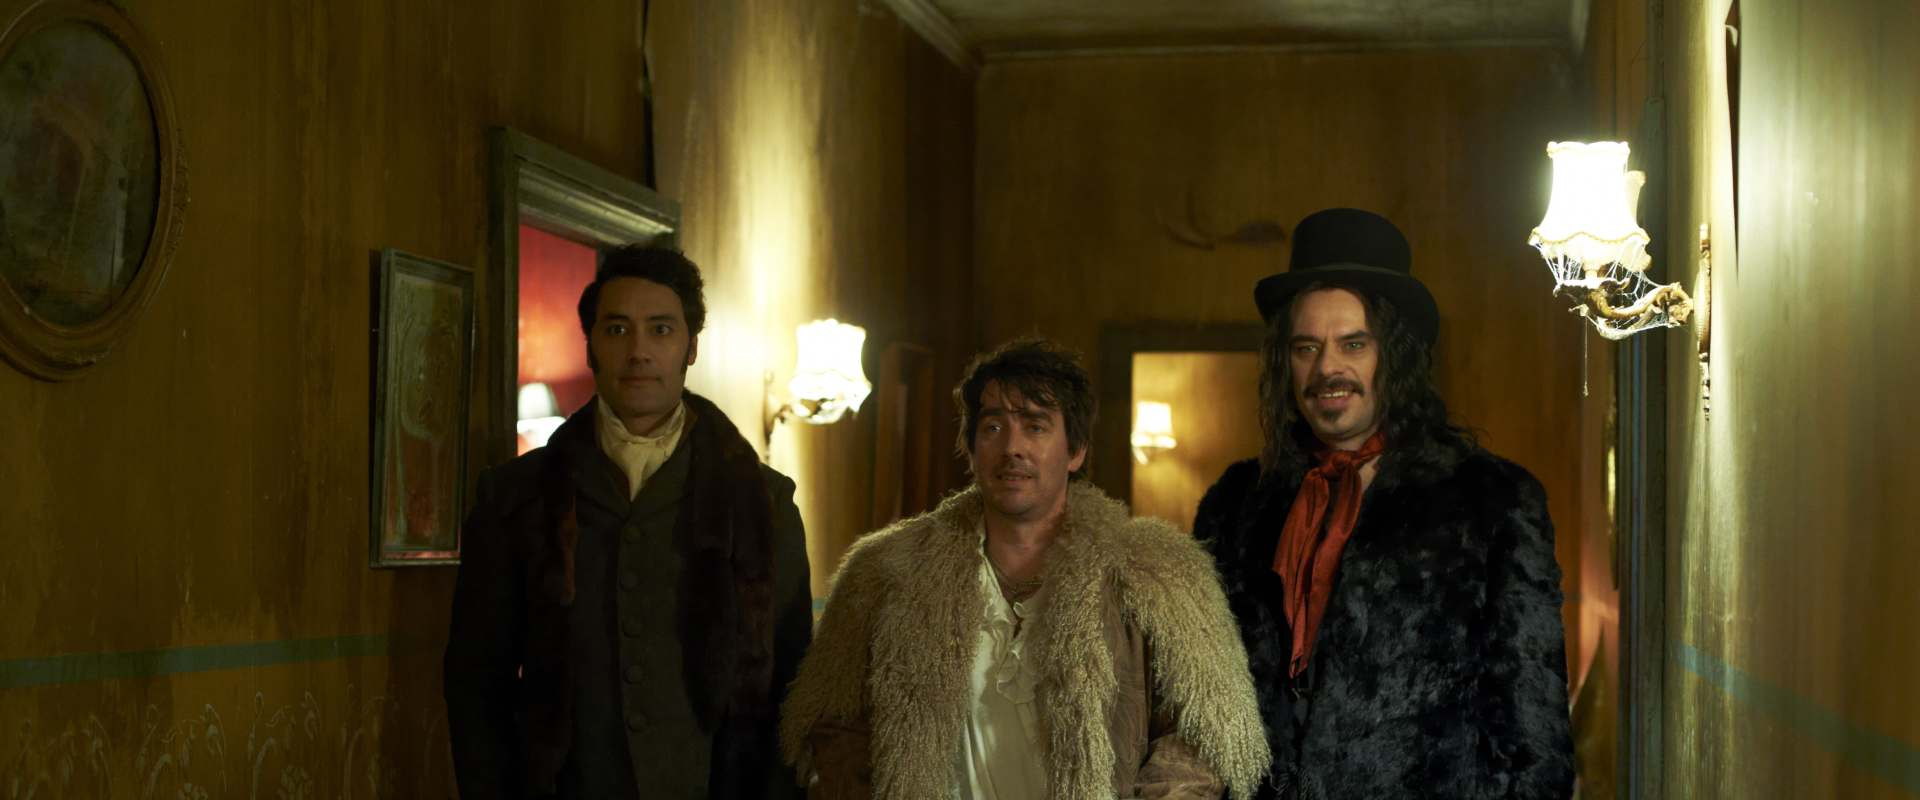 What We Do in the Shadows background 2